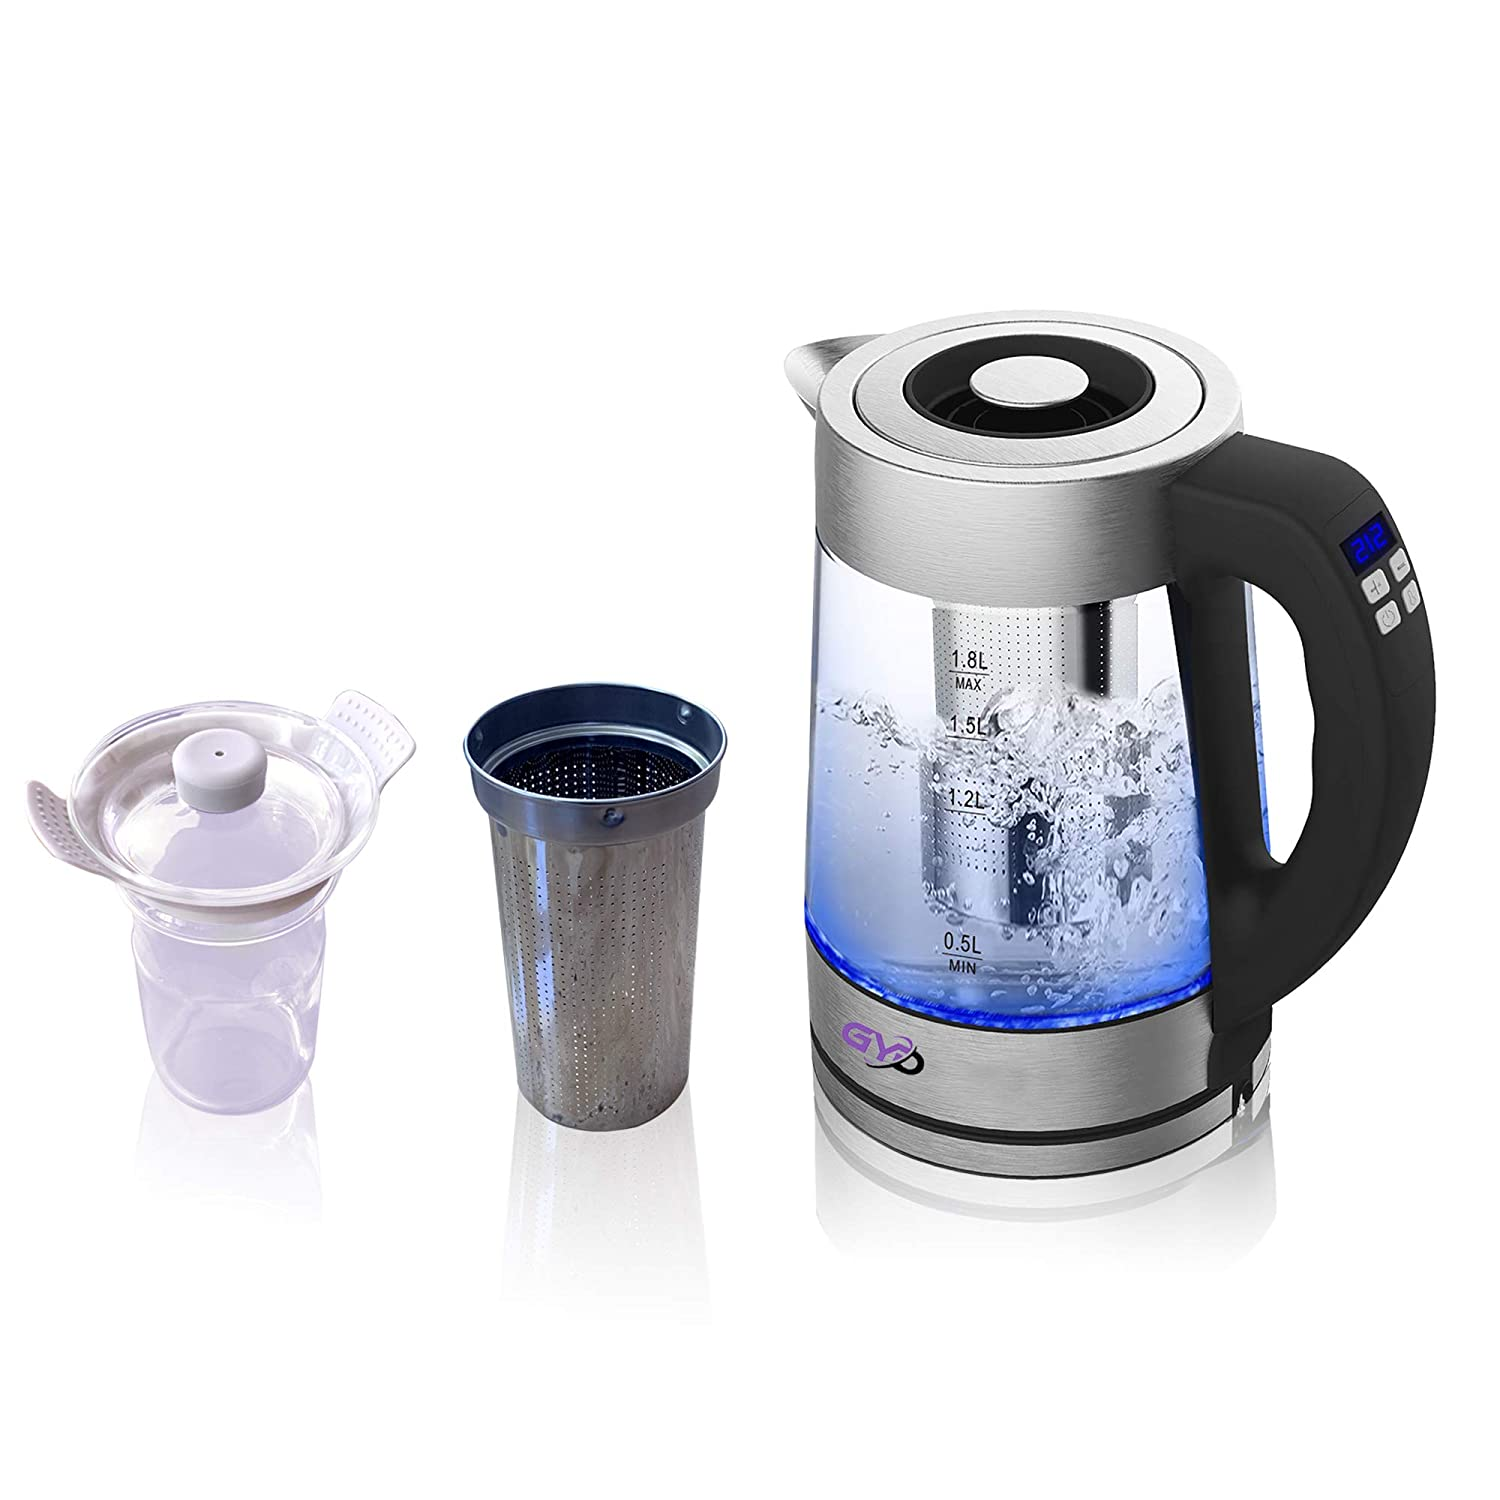 GYD Eletric Kettle with Tea Infuser and Warmer Cup 1.8L 1200W Temperature Controllable with LCD Display.